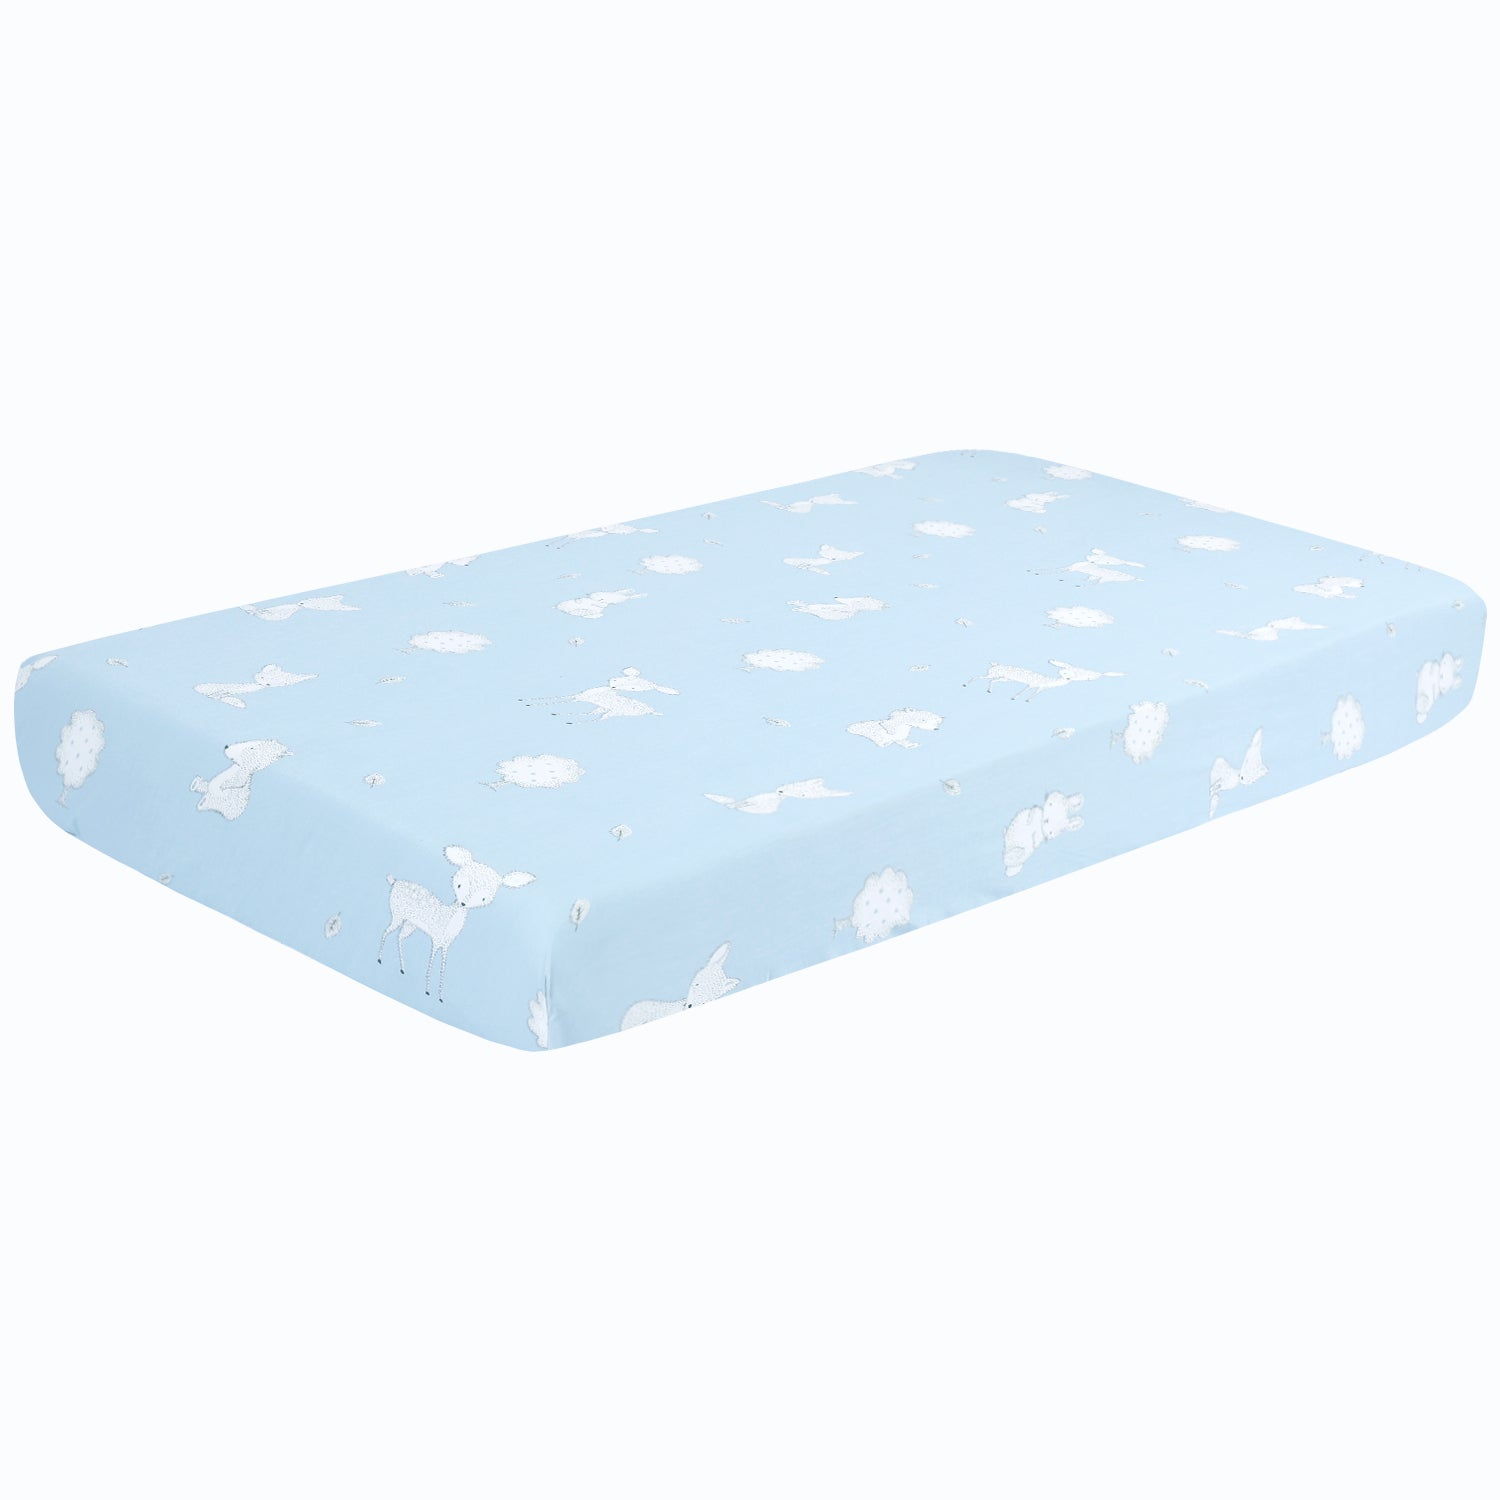 OUT OF STOCK - 100% Cotton Crib Sheets 2PK - Bamboo-blue White Woodland